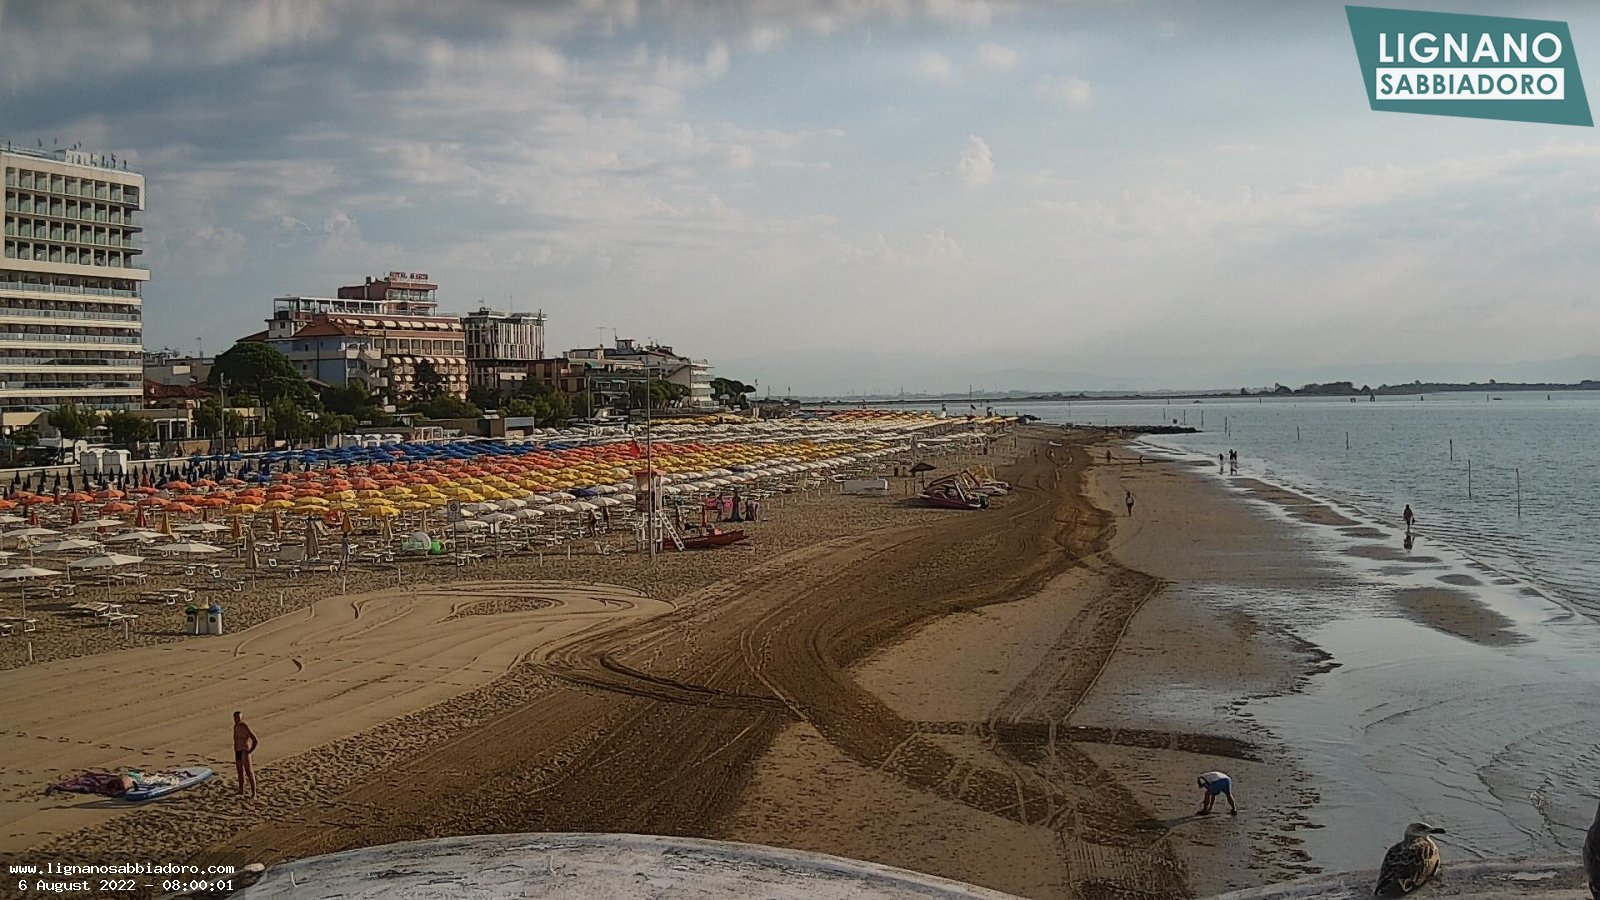 Webcam in Lignano Sabbiadoro, panoramic view onto the VIP gazebos on the beach